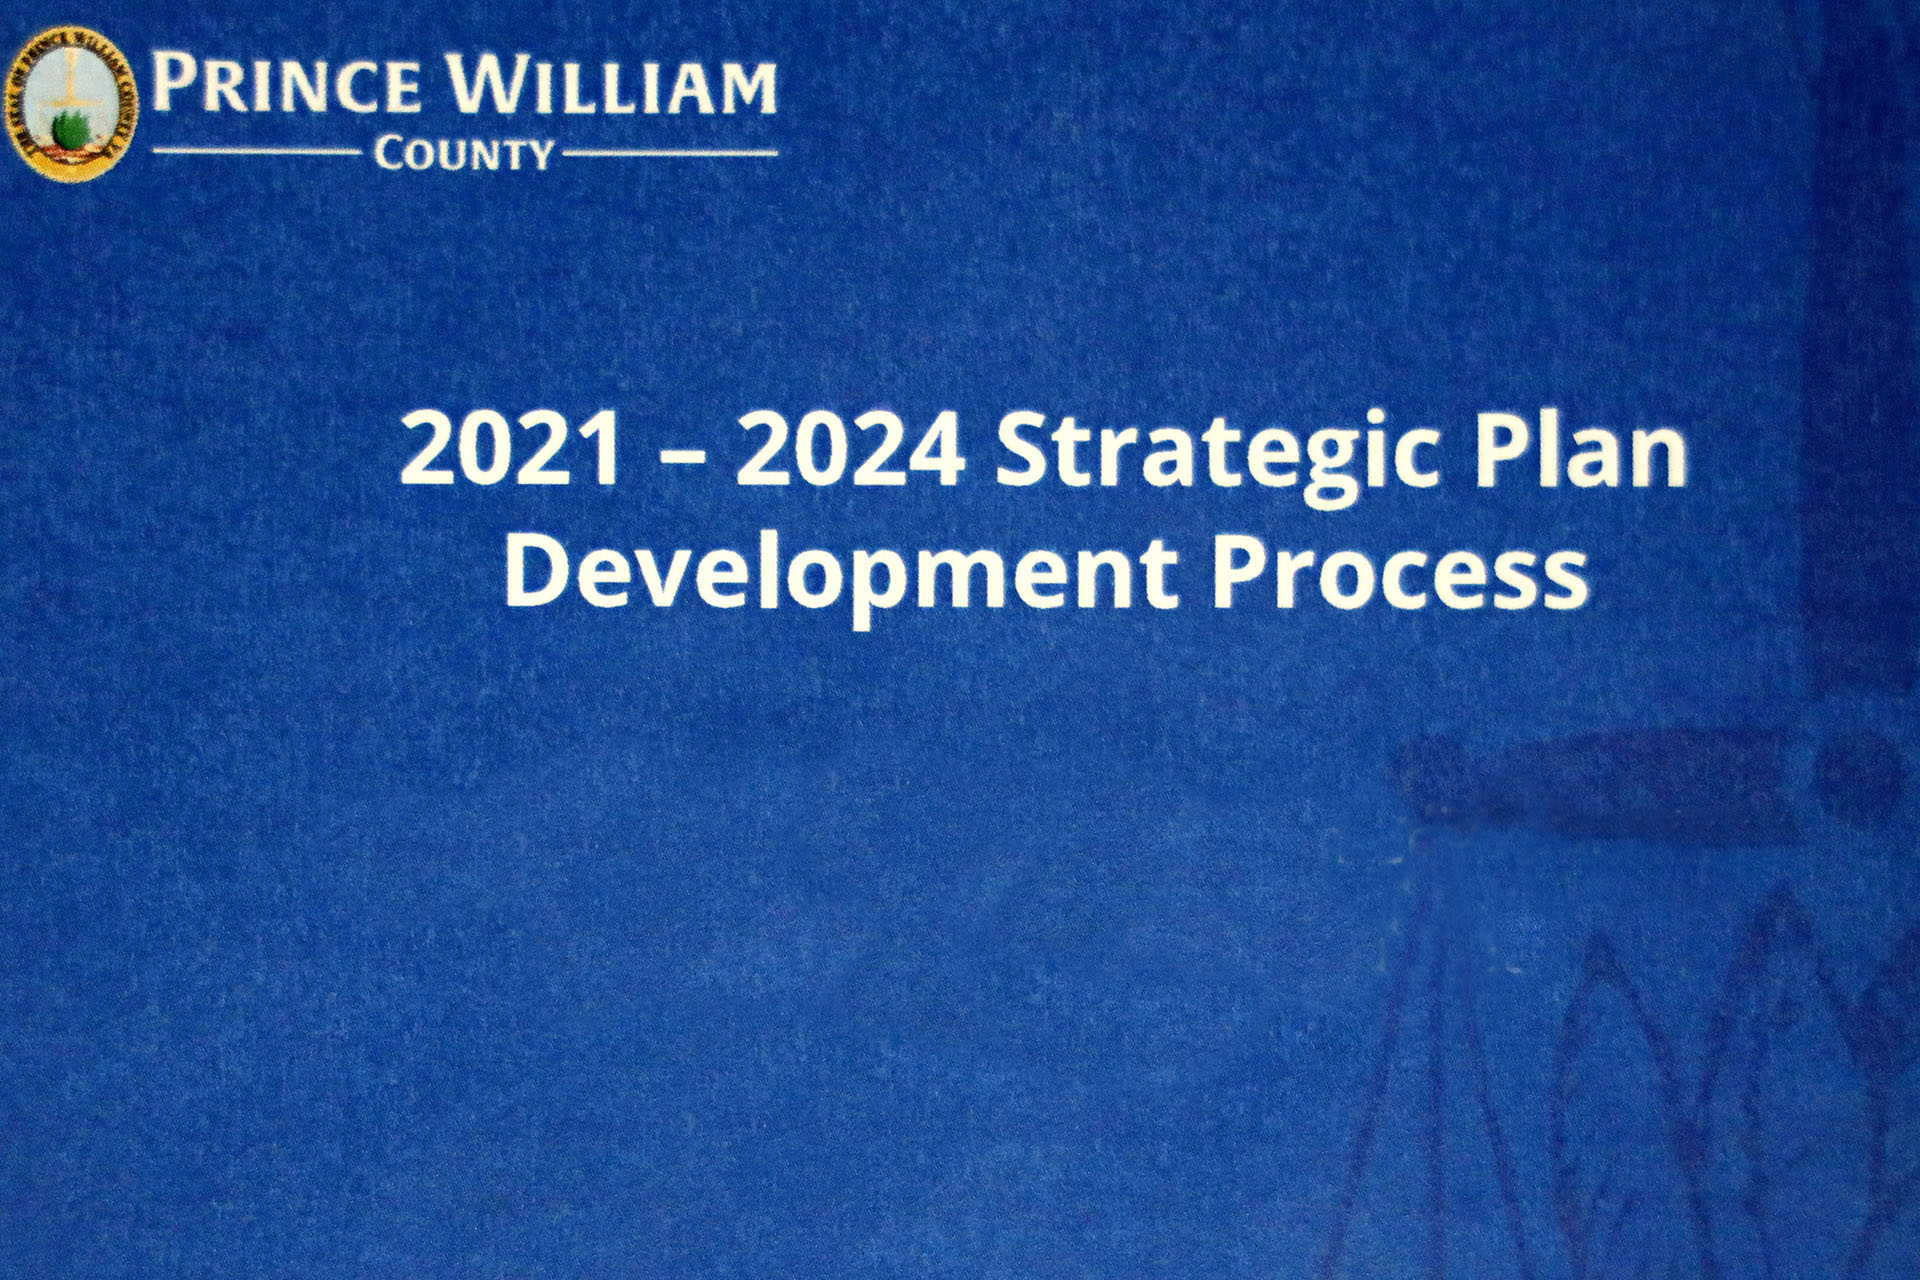 Strategic Plan input to be sought virtually